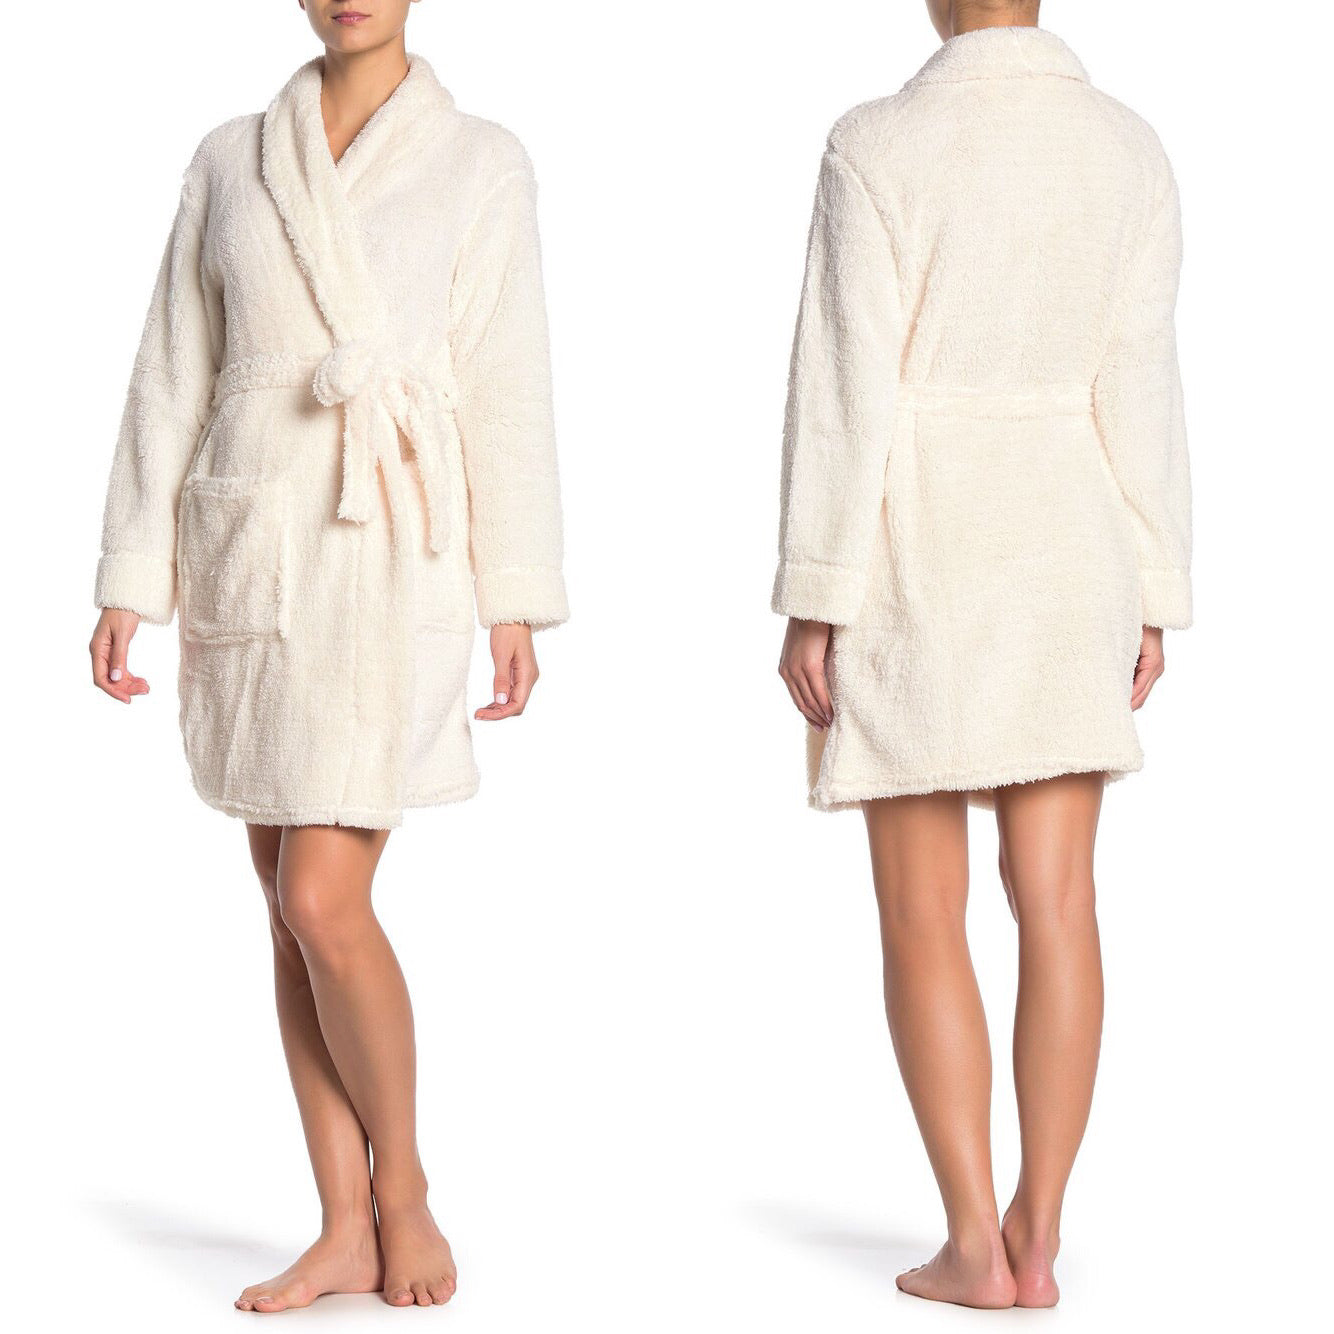 Tahari Sparkle Faux Shearling Robe in Pale Rose Size S/4 (NWT)